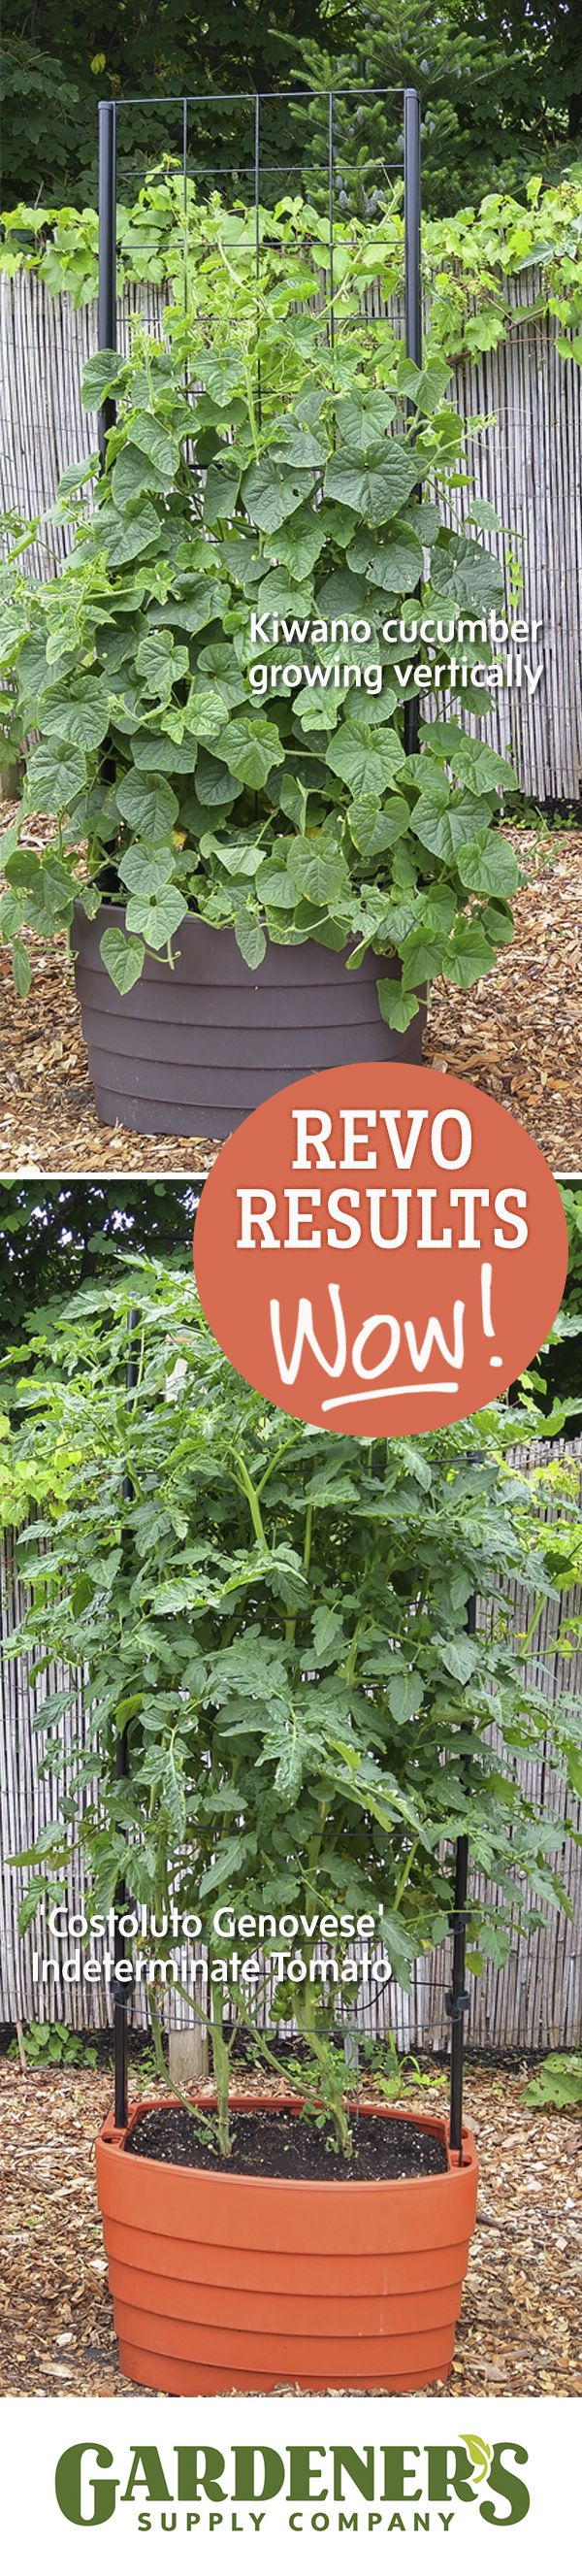 We had to show you some results from our test gardens. Our Gardener's Revolution Classic Tomato Planter and Classic Vine Planter at work!